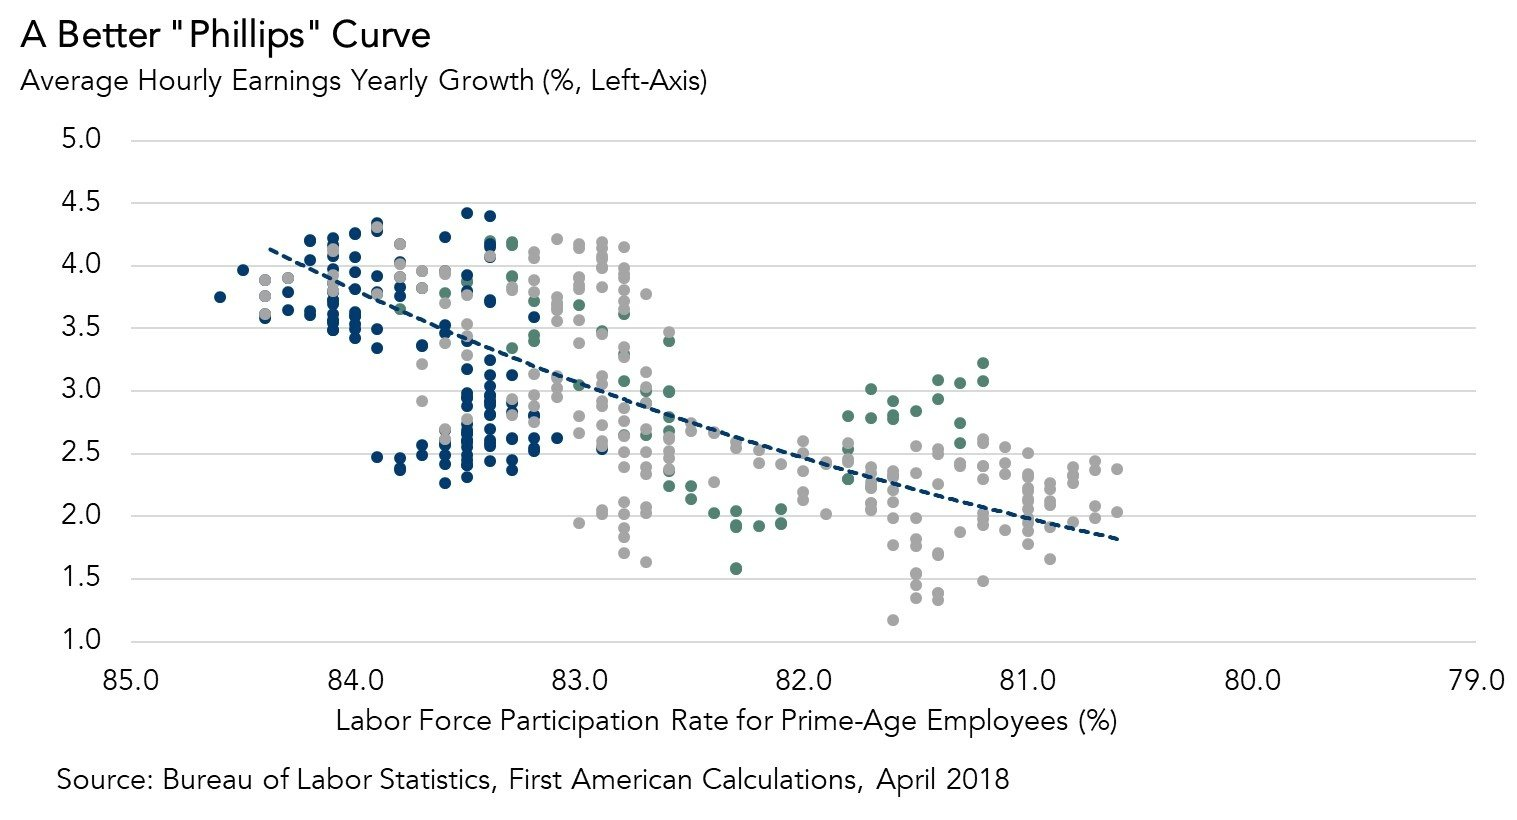 Chart: Phillips Curve, Average Hourly Earnings Yearly Growth